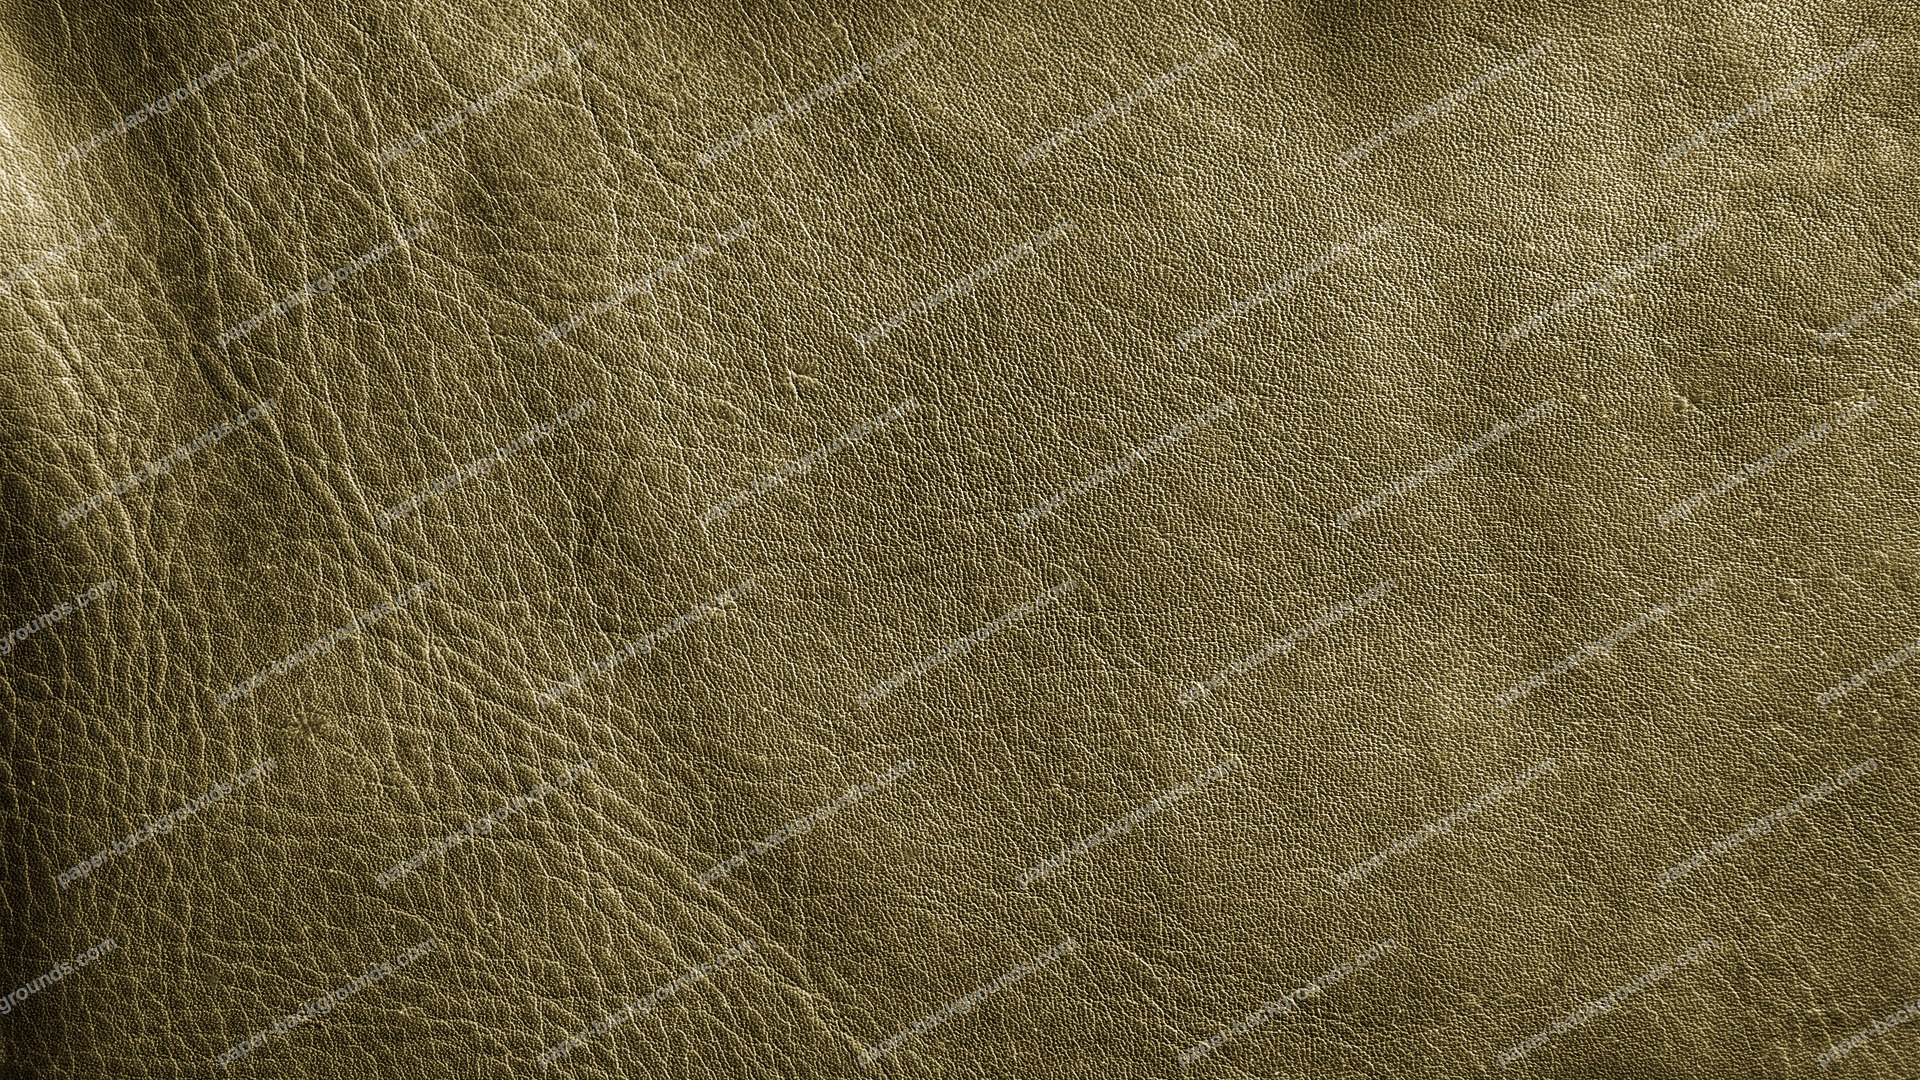 Brown Leather Texture HD 1920 x 1080p